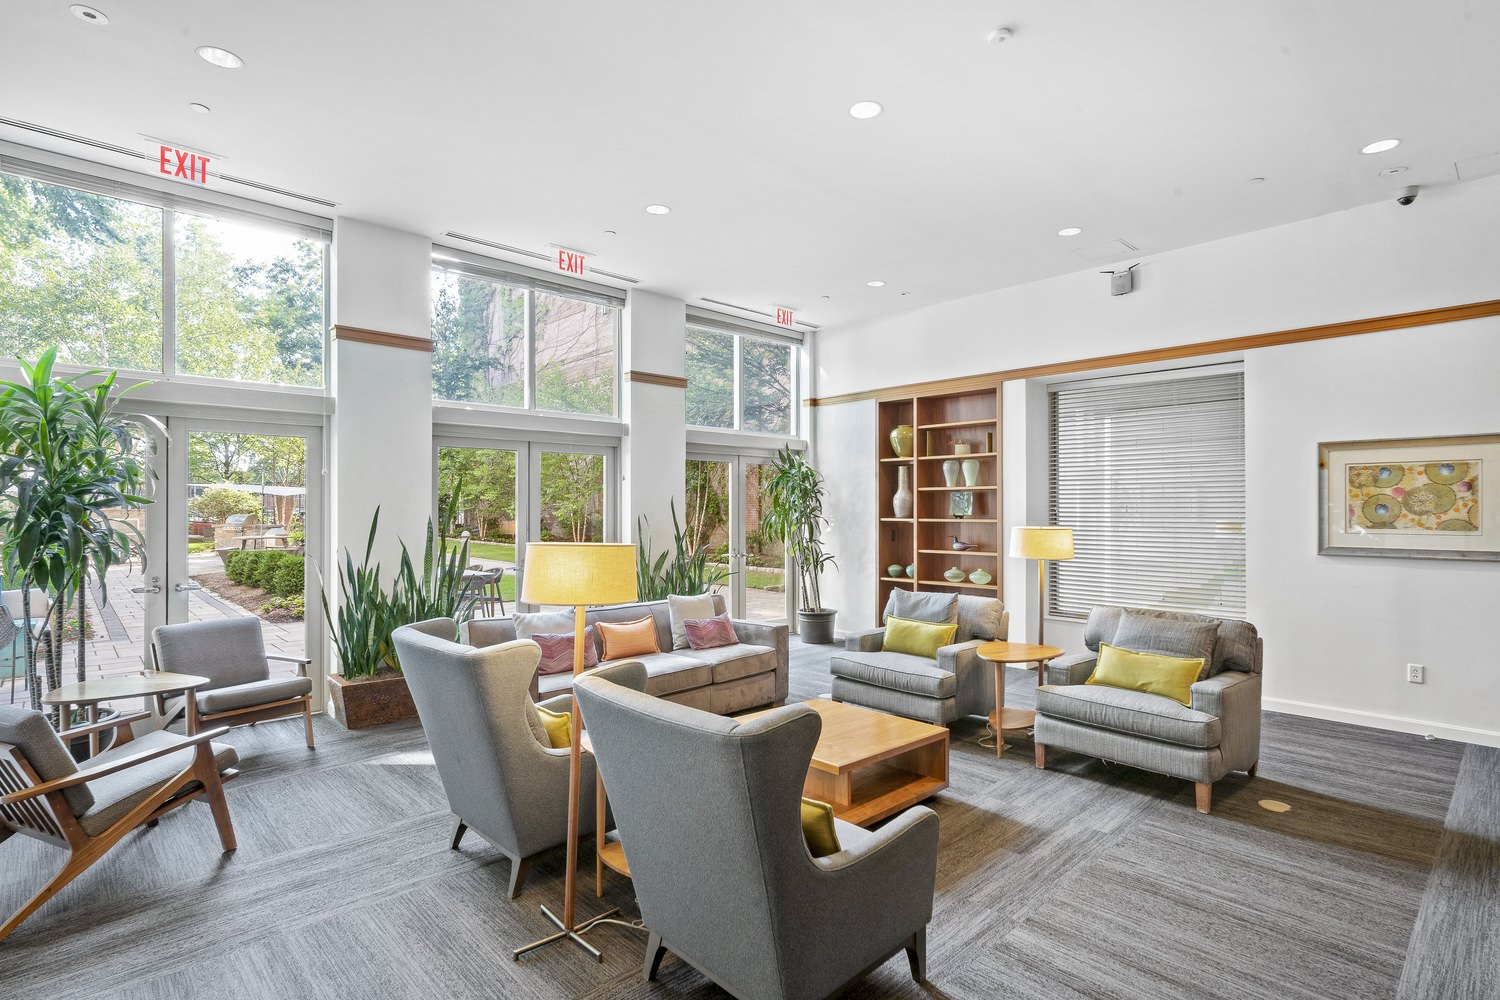 Lobby inside a building that has grey couches and other furniture with a glass wall that gives a view of the courtyard.